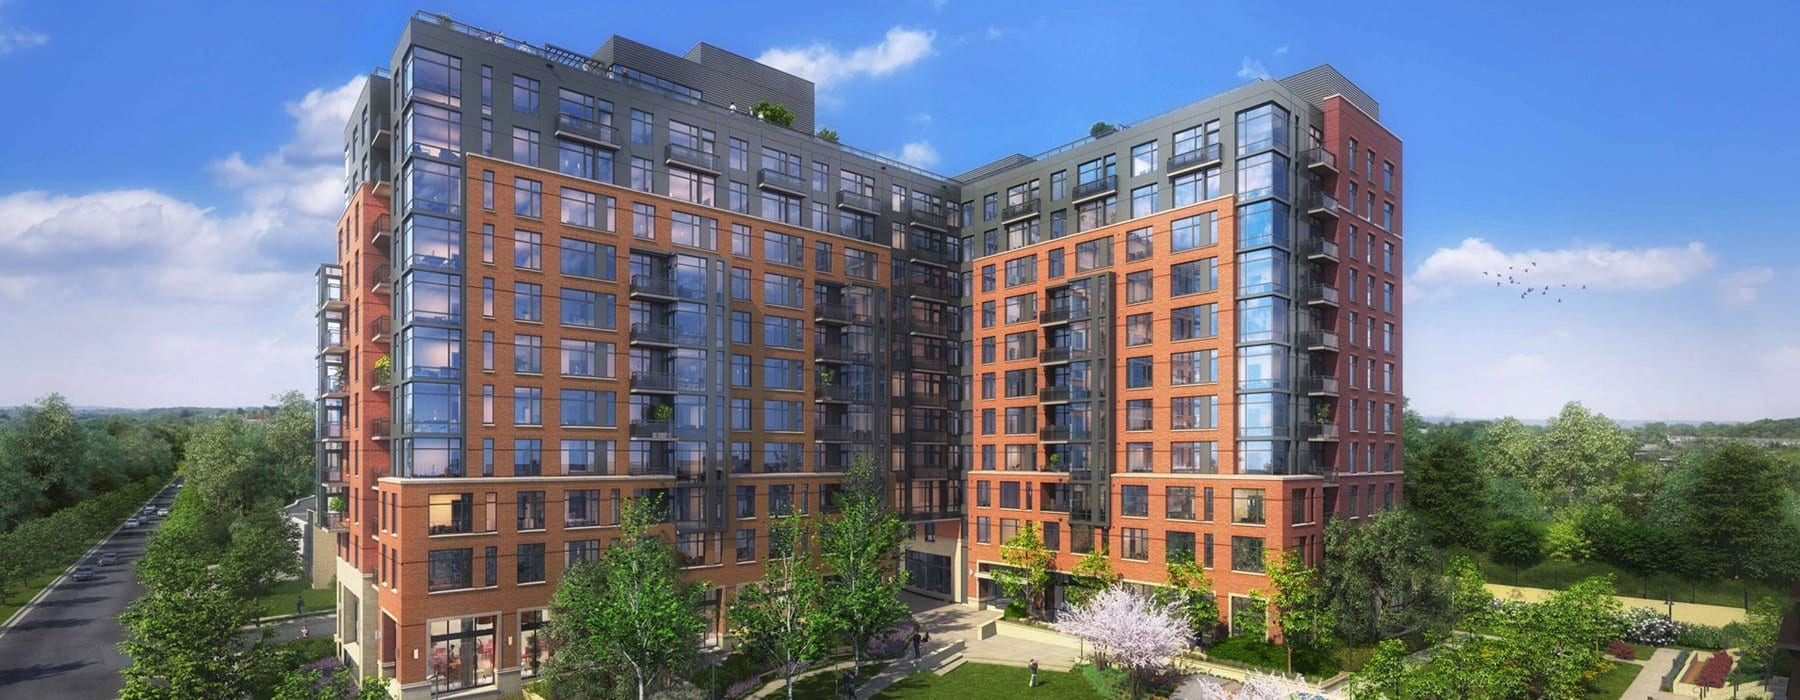 Brand New, Luxury Apartments in Chevy Chase, MD